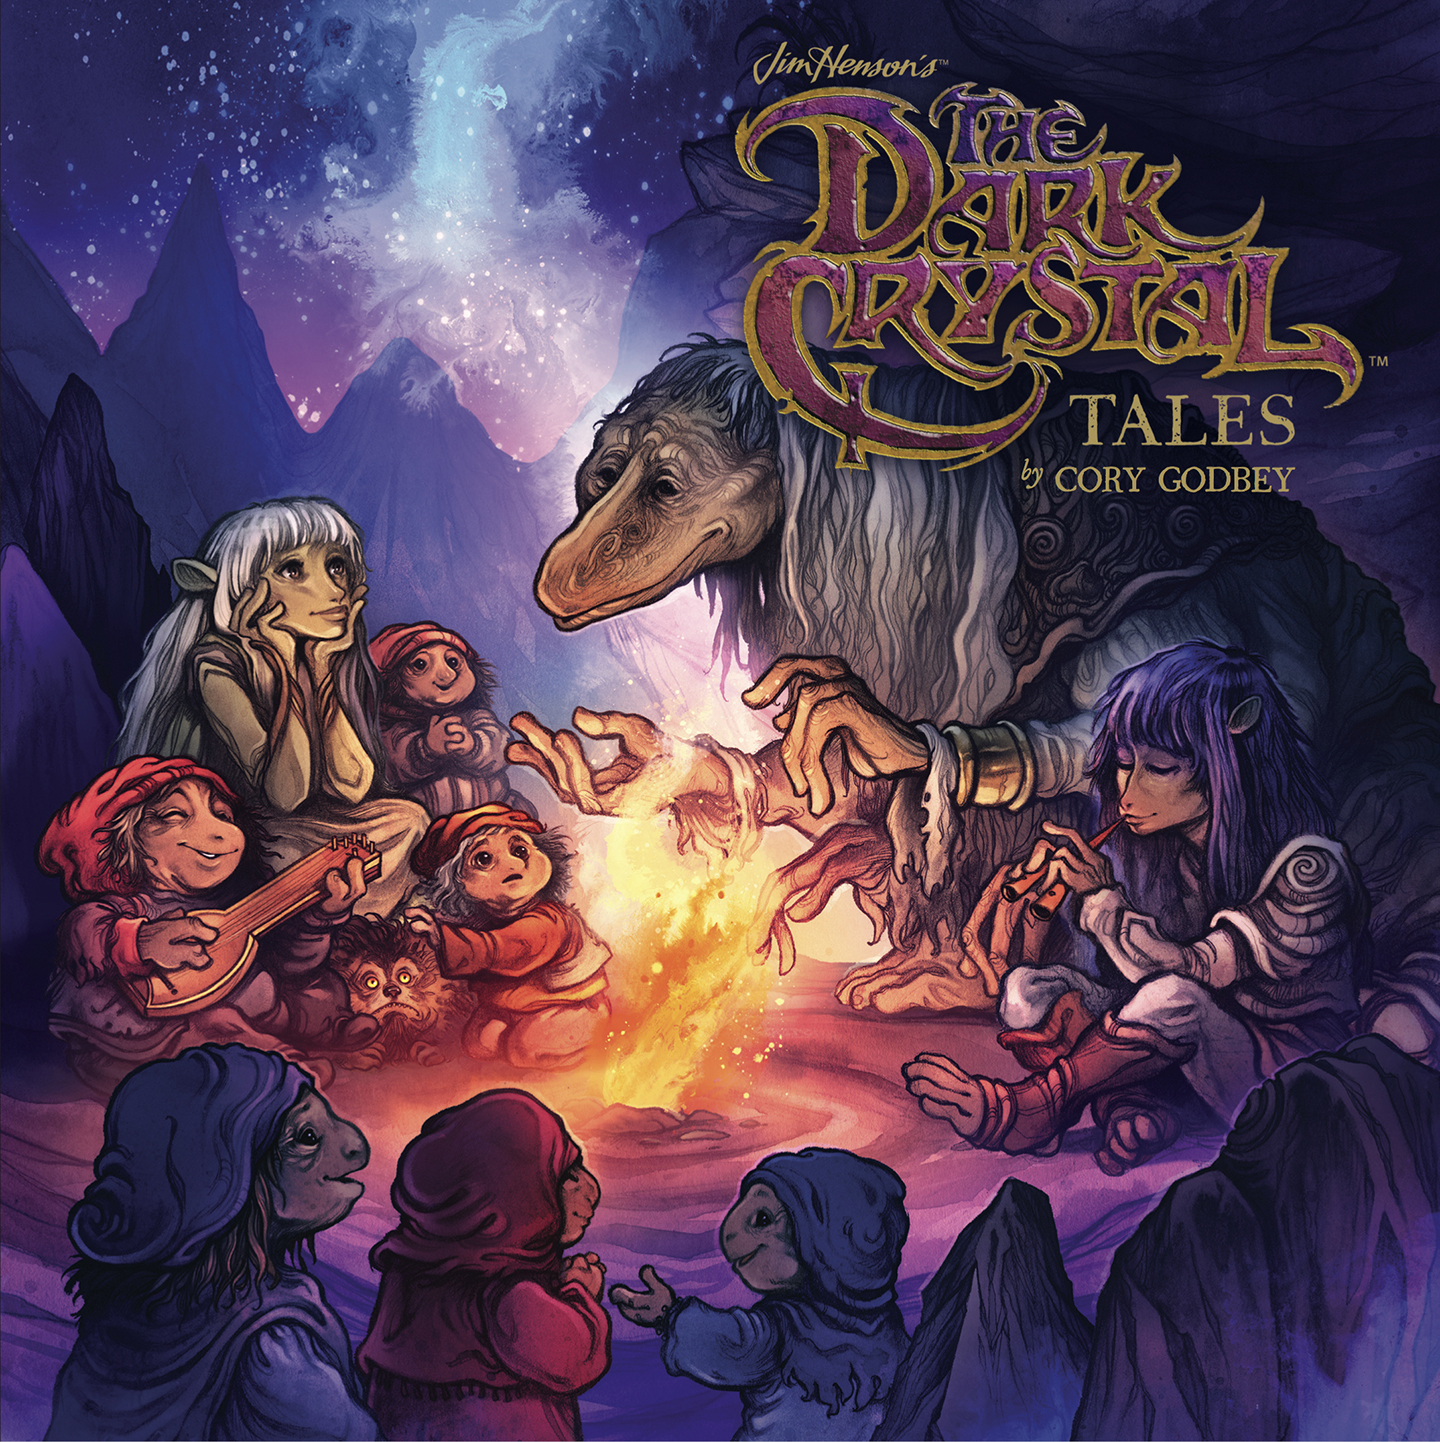 Cover of The Dark Crystal Tales: various characters from the movie gather around a campfire listening to a story